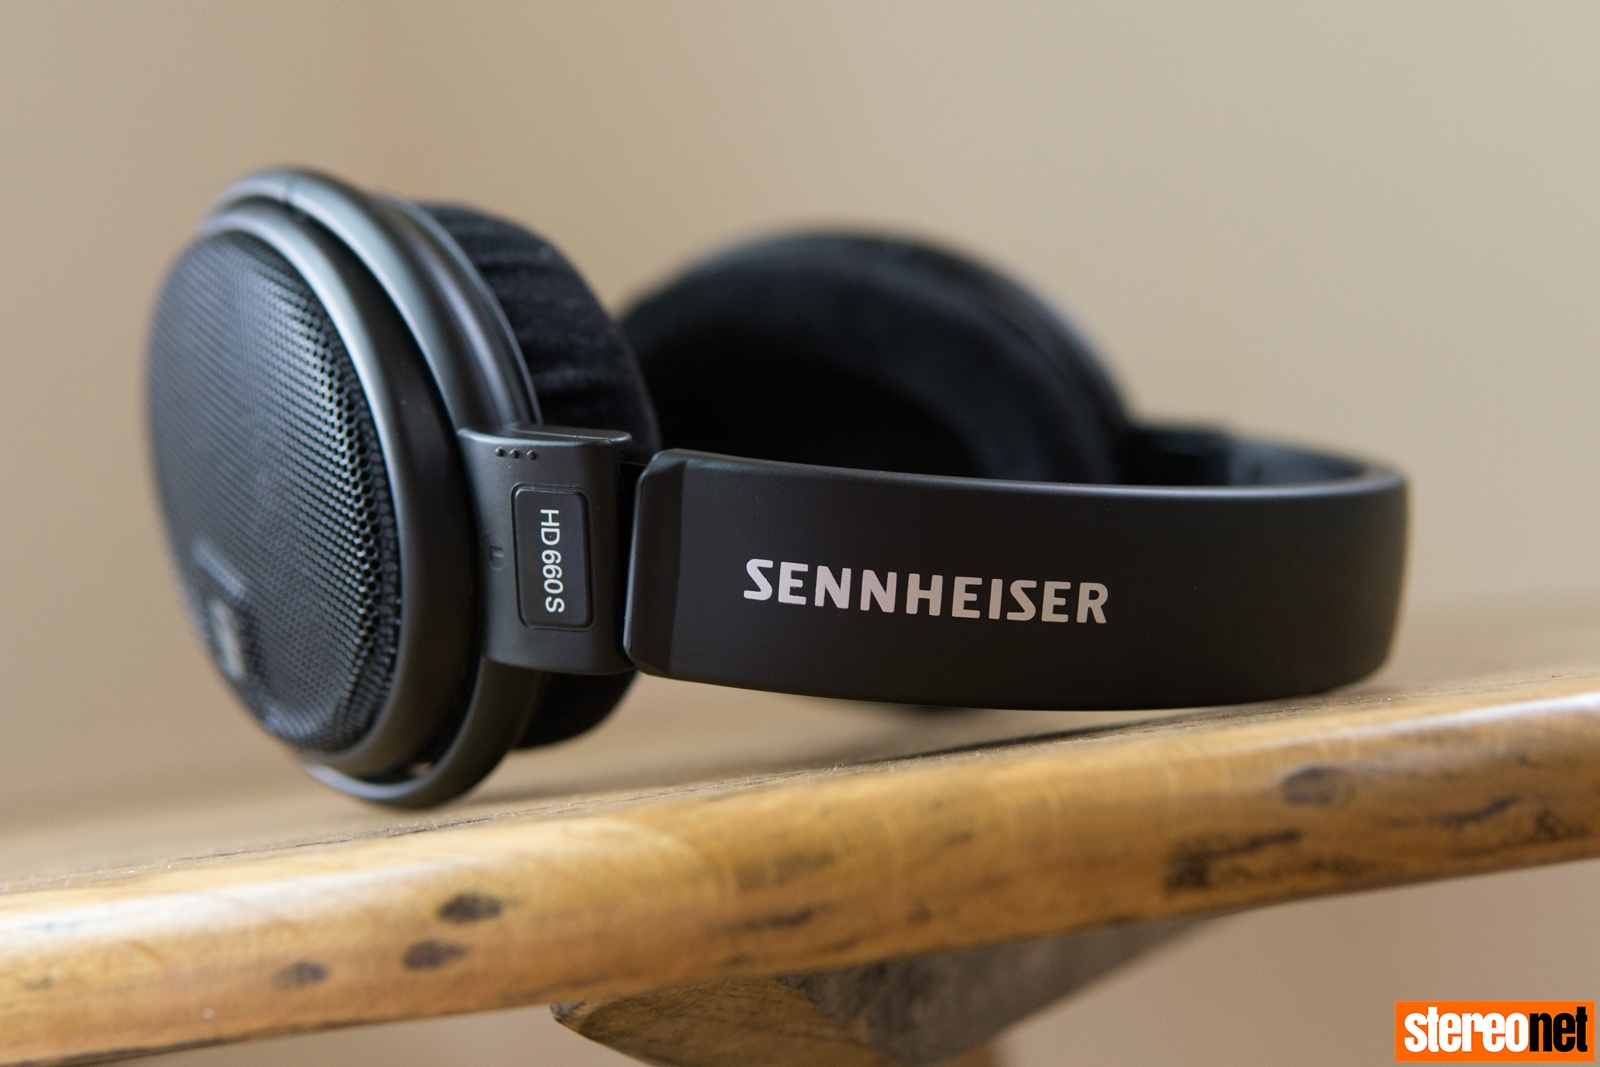 Sennheiser Hd 660 S Over Ear Headphones Review Stereonet Australia 800 Dynamic Stereo Headphone Its Hard To Believe But Sennheisers 600 Were First Released In 1997 Theyve Now Been Manufacturing And Selling This Model For Twenty